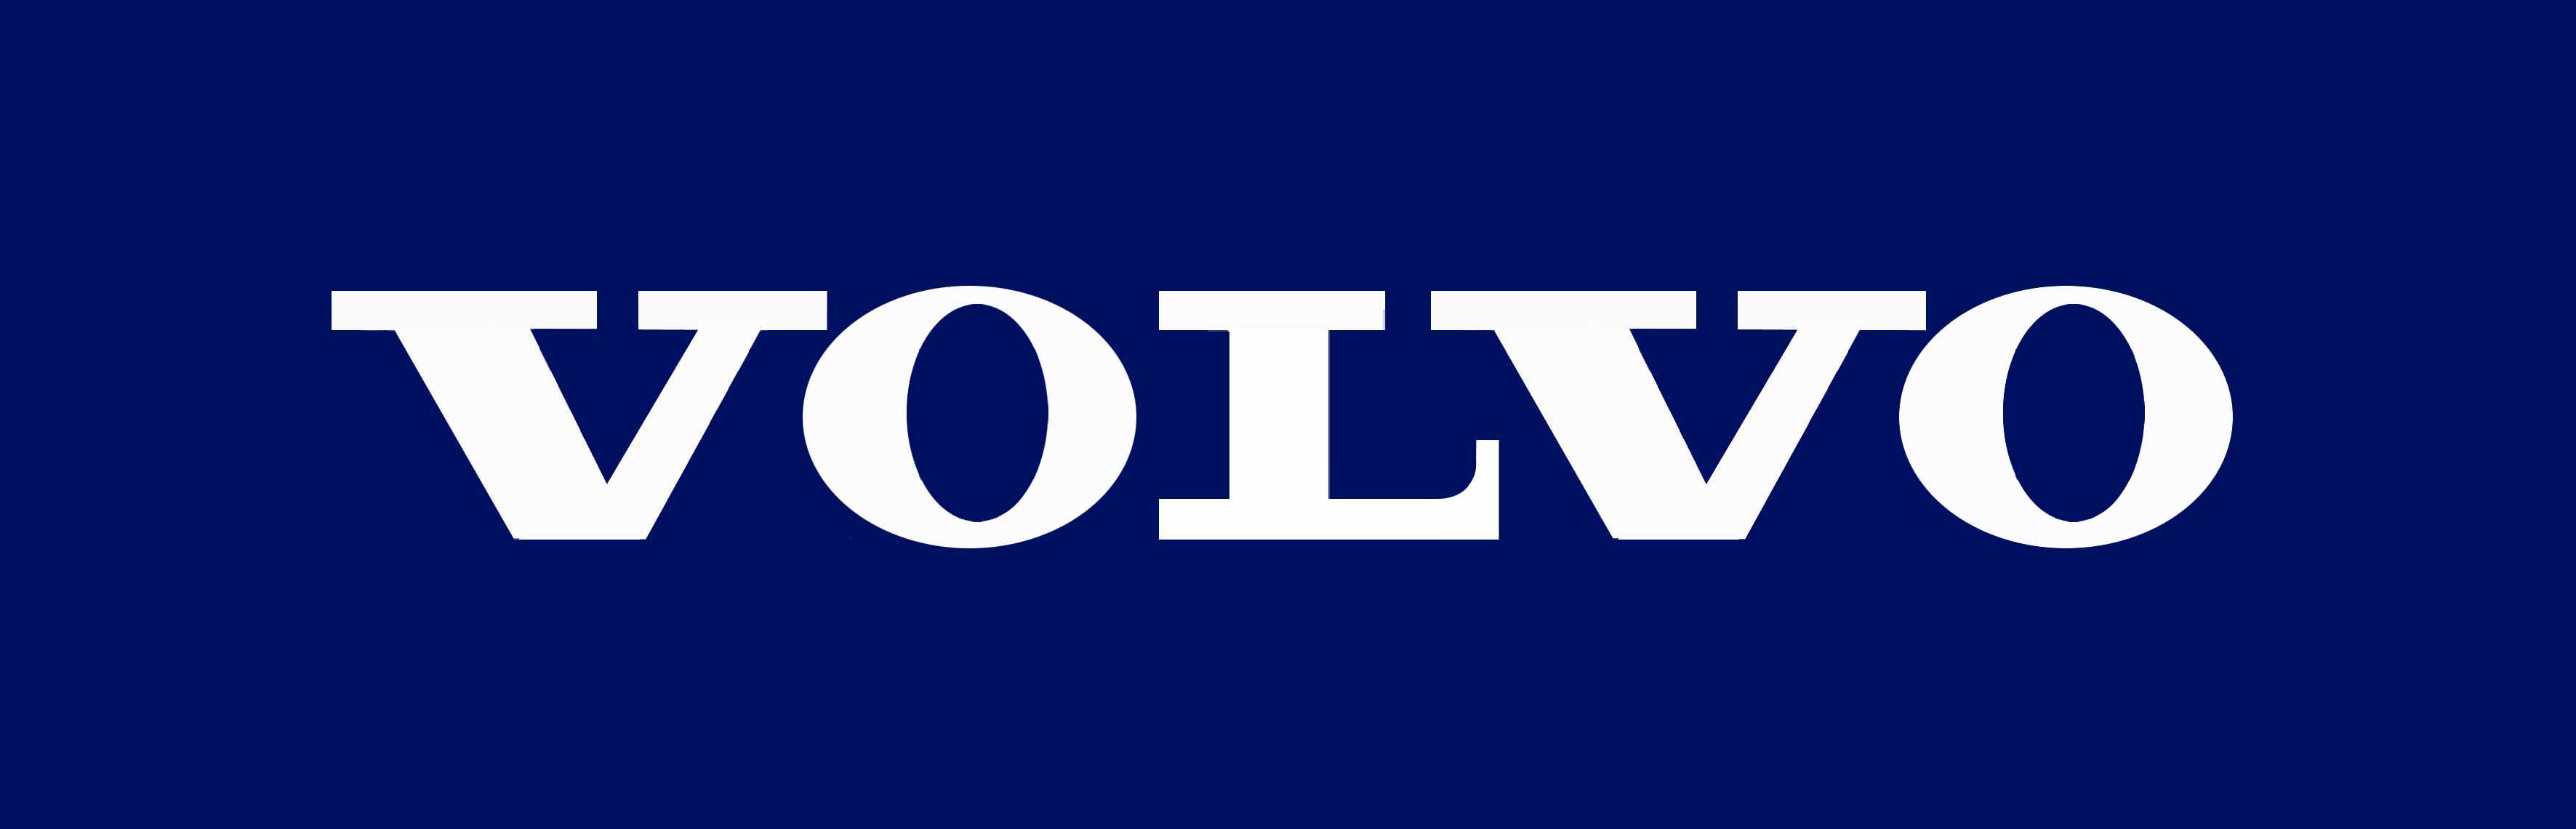 Volvo Logo Volvo Car Symbol Meaning And History Car Brand